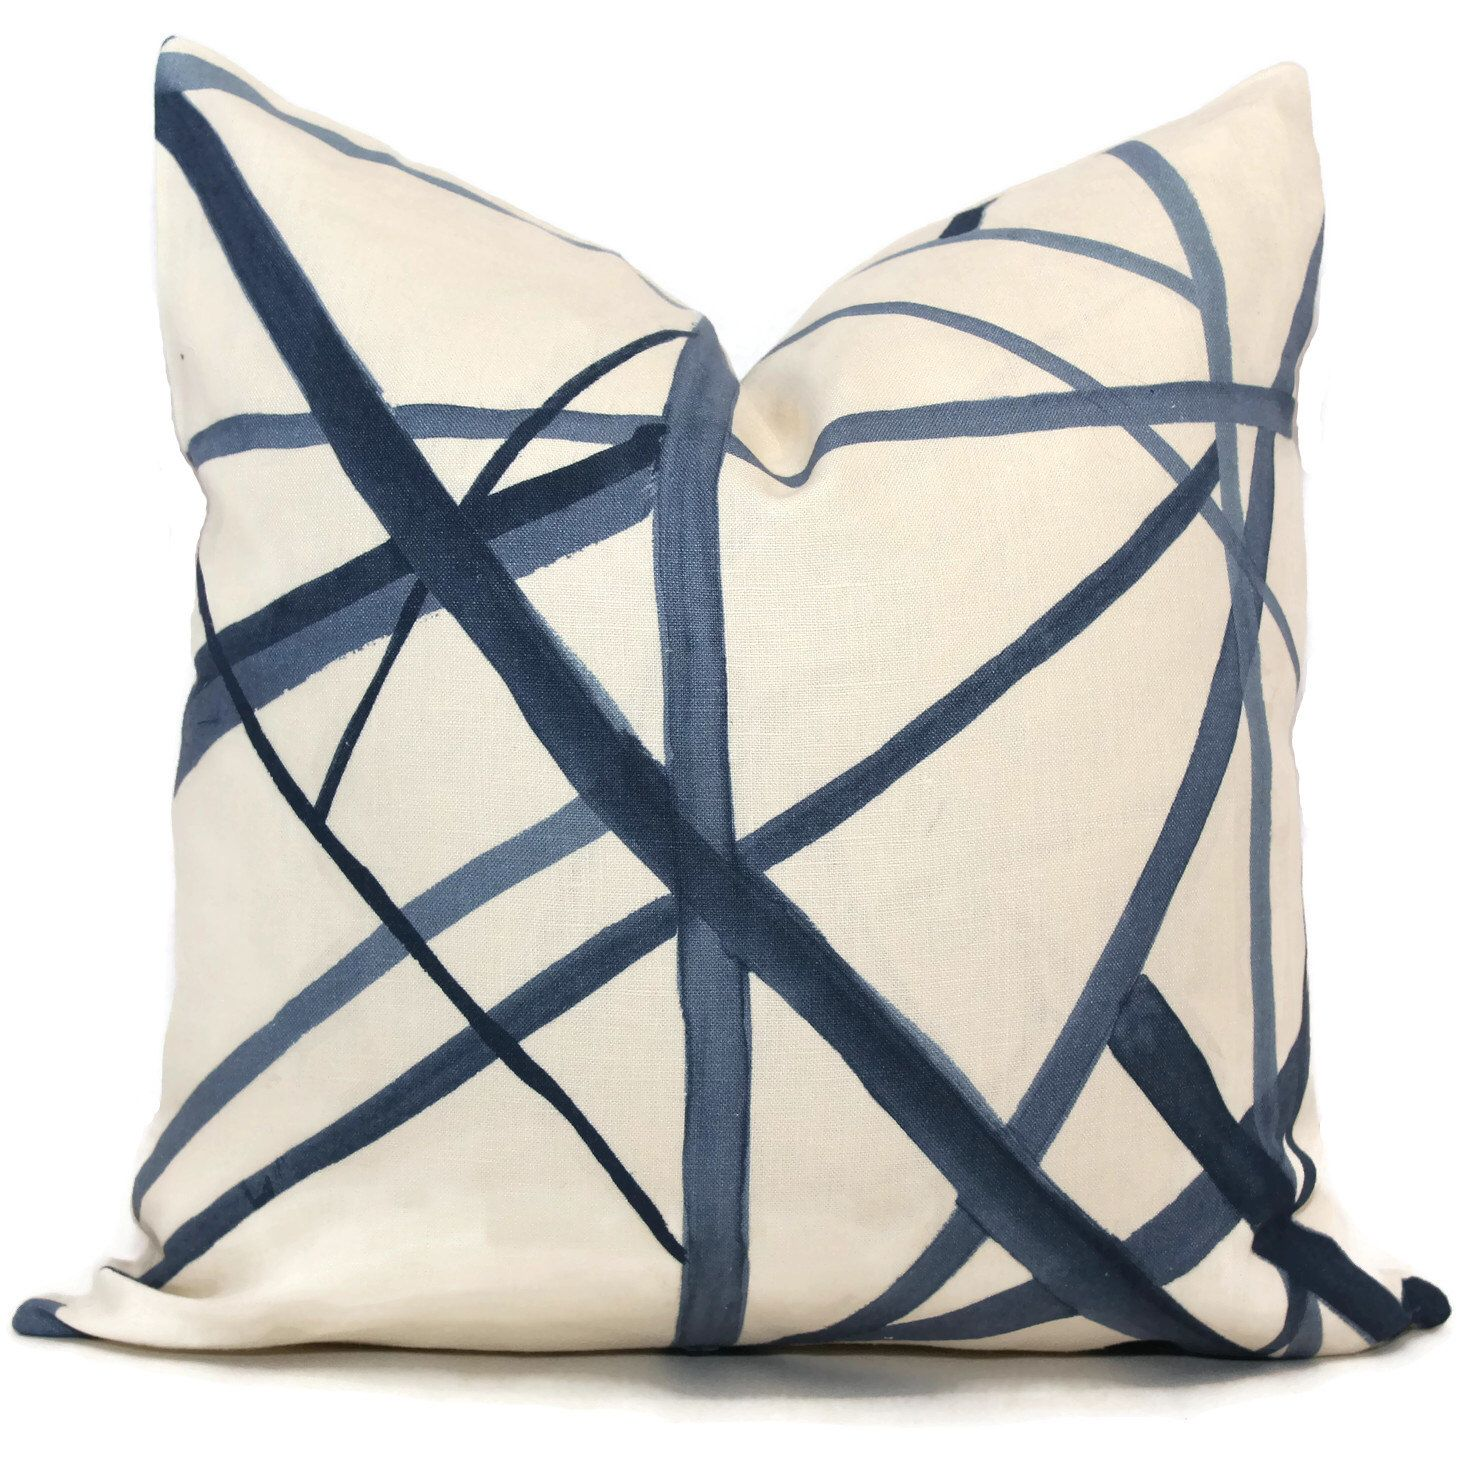 periwinkle blue channels pillow cover by groundworks square euro